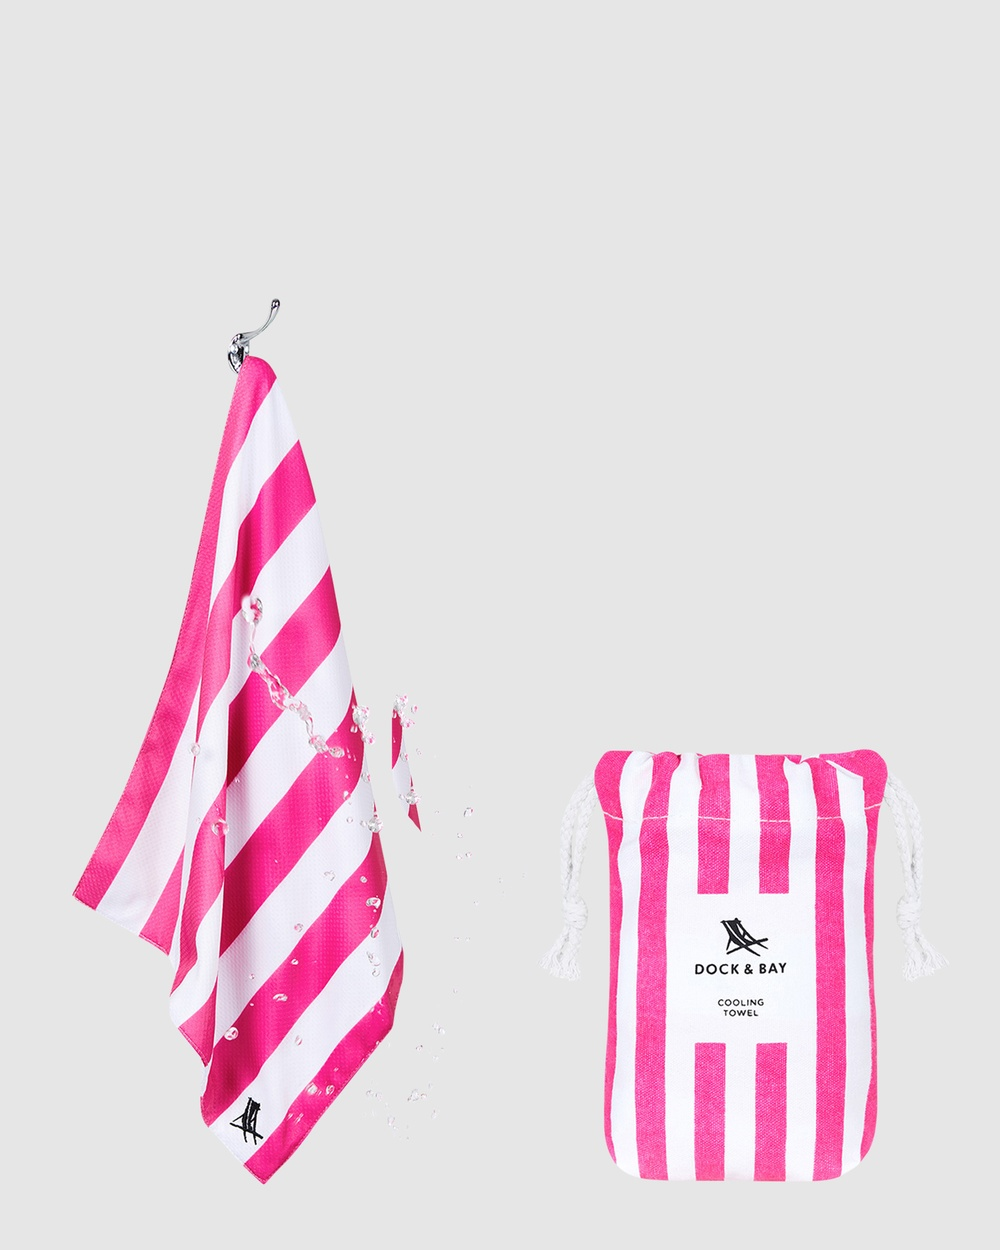 Dock & Bay Cooling Towel 100% Recycled Cabana Collection Gym Yoga Pink